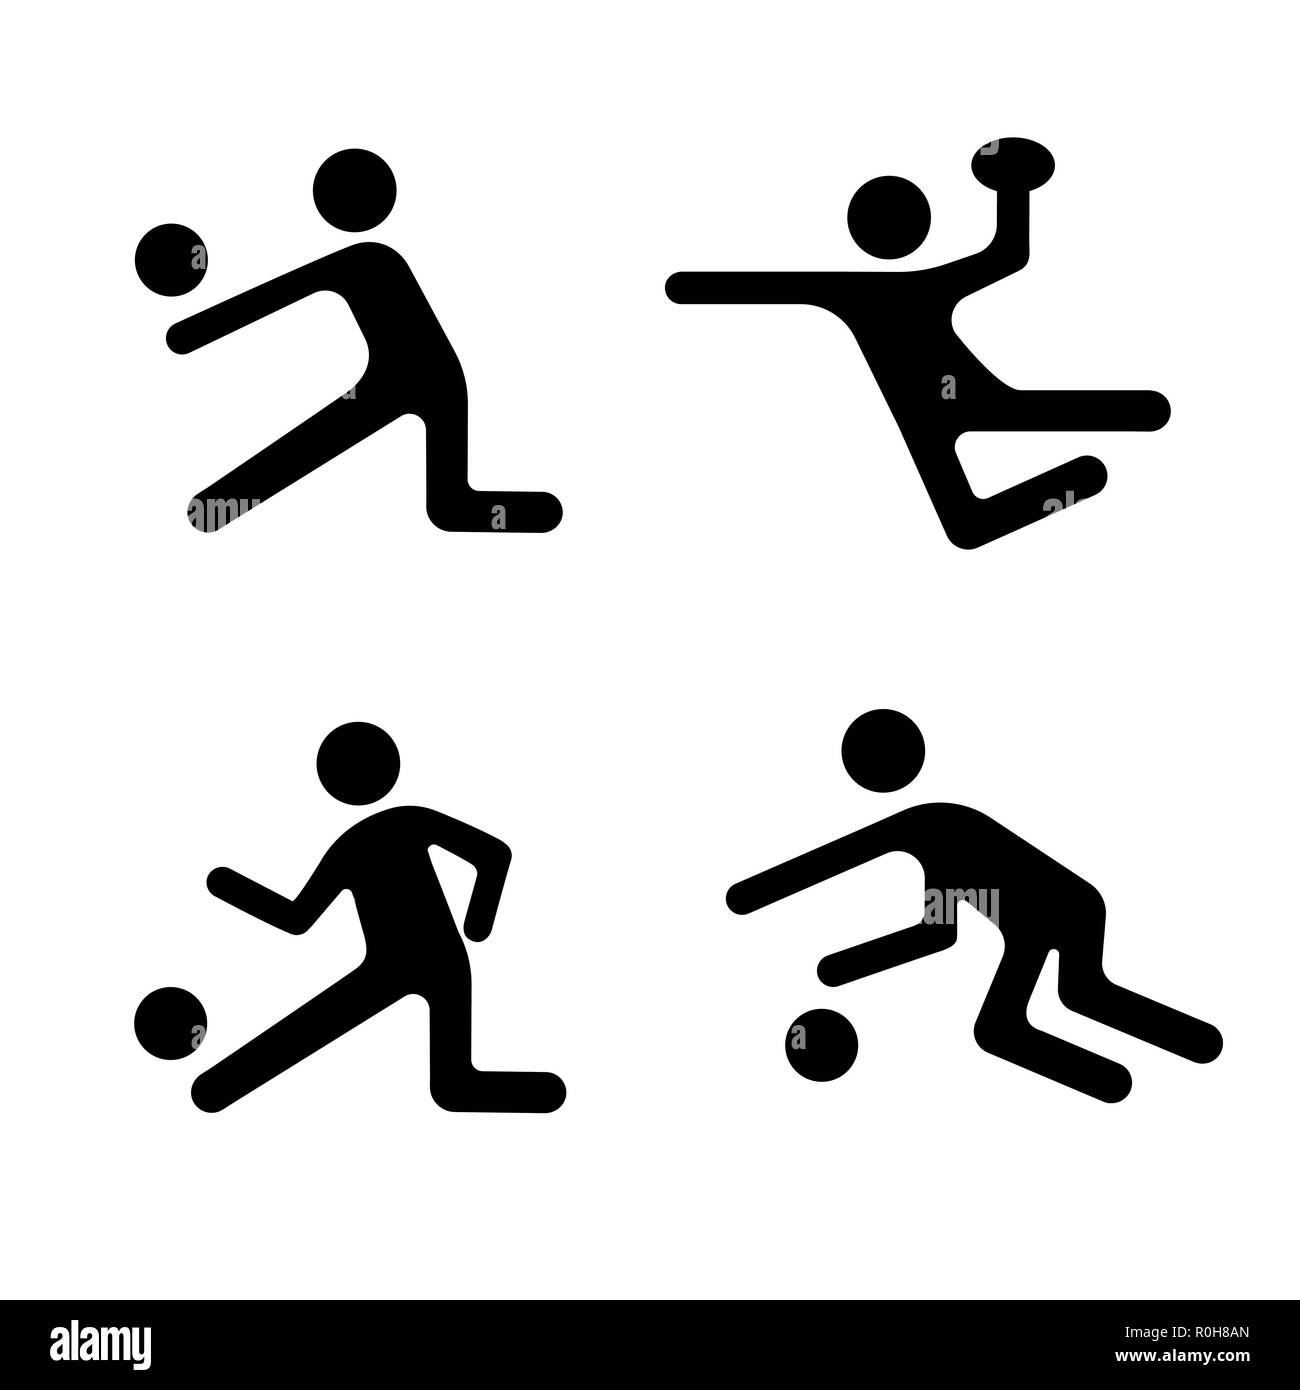 Sport vector icons set, ball games logo, shape athlete person. Black badges football, basketball, volleyball and various ball games isolated on white  - Stock Vector